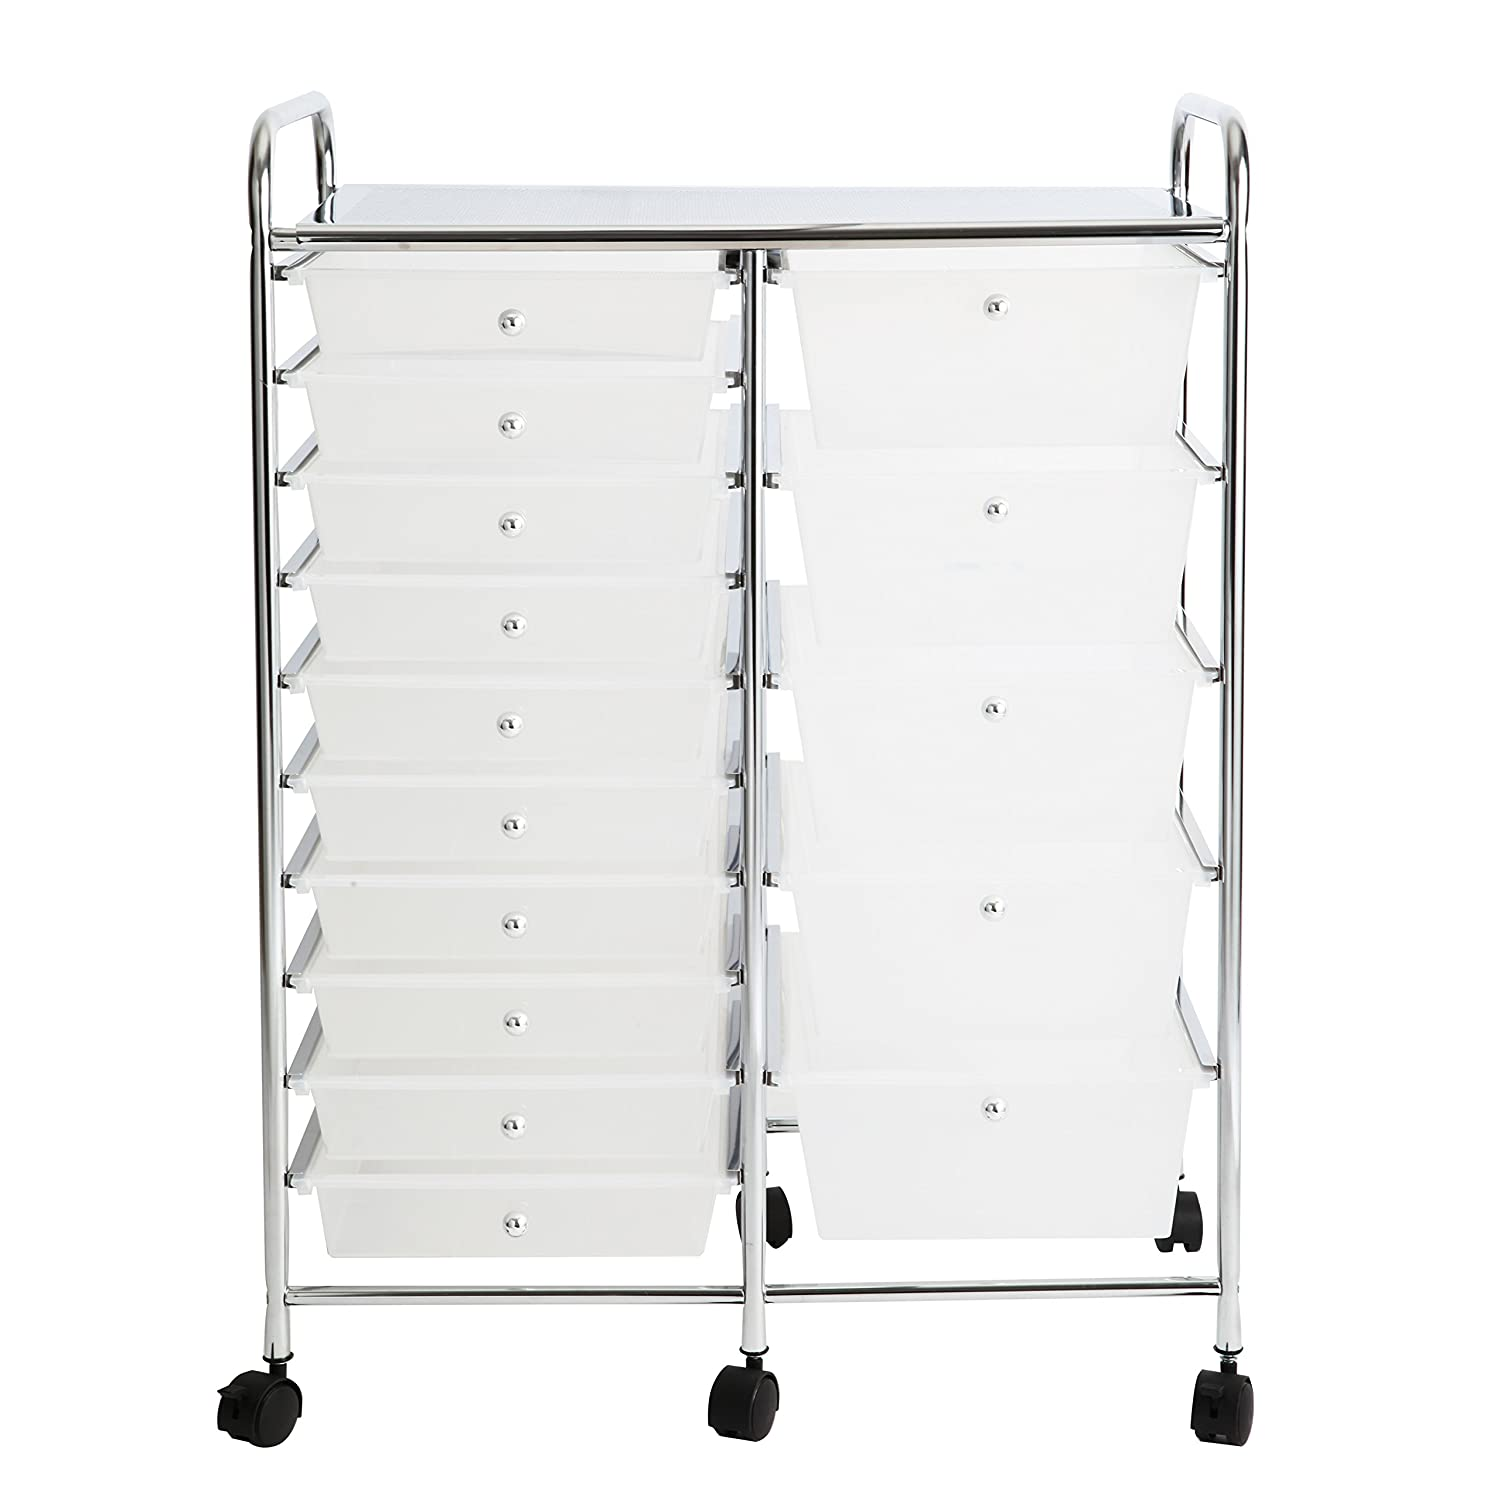 Finnhomy 15Drawer Rolling Cart Organizer,Storage Cart With Drawers, Utility  Cart For School,